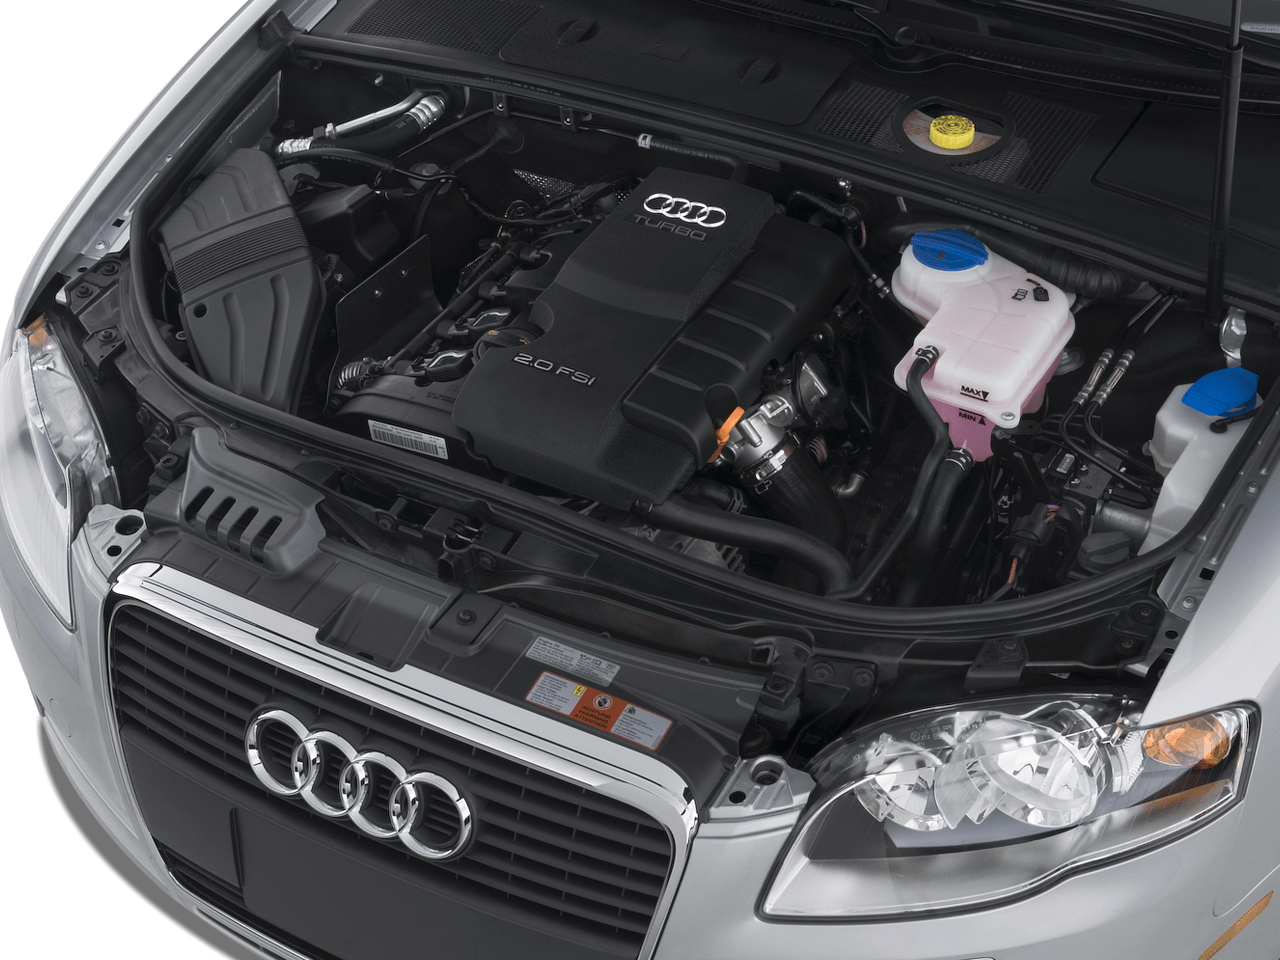 hight resolution of 2005 audi a6 engine diagram